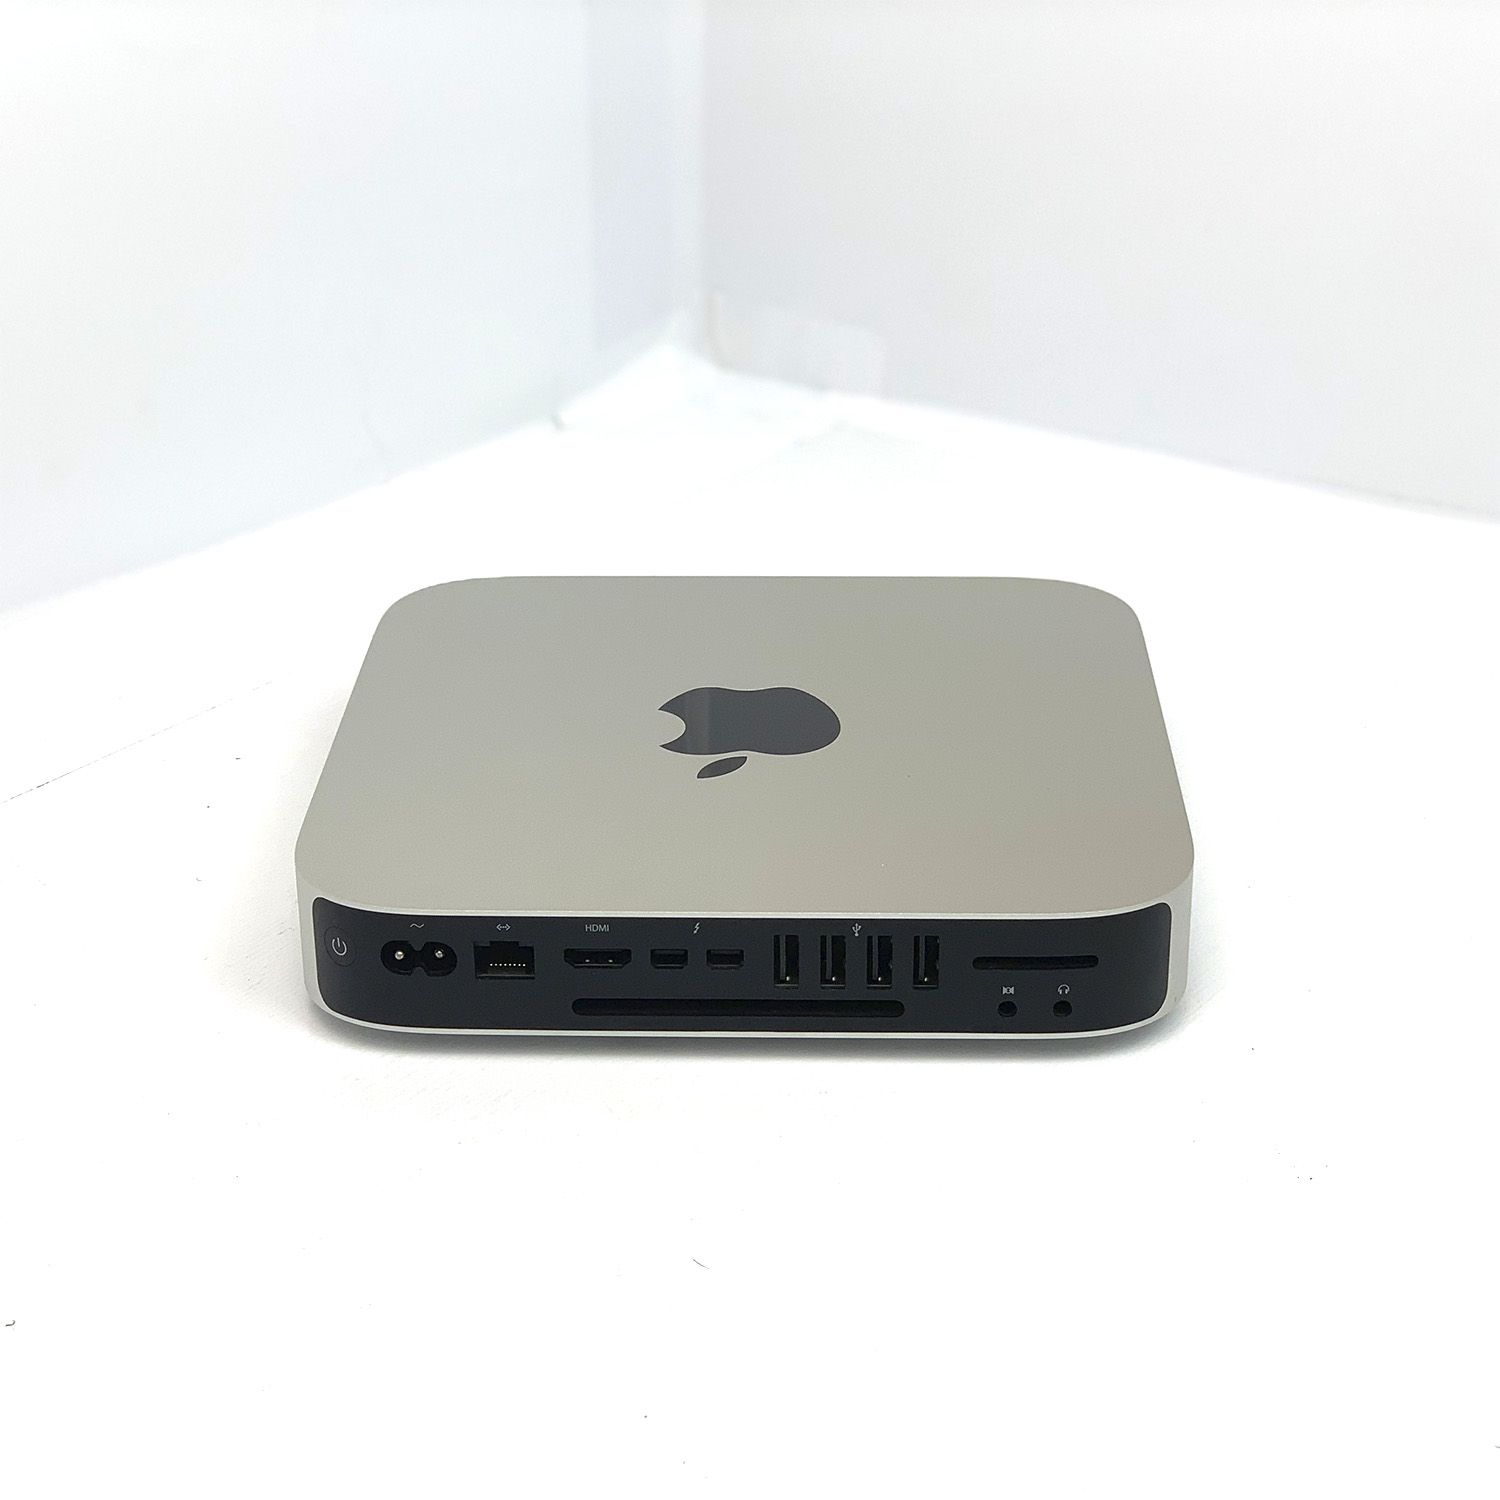 Mac Mini i5 1.4Ghz 4GB 512GB SSD MGEM2LL/A Seminovo